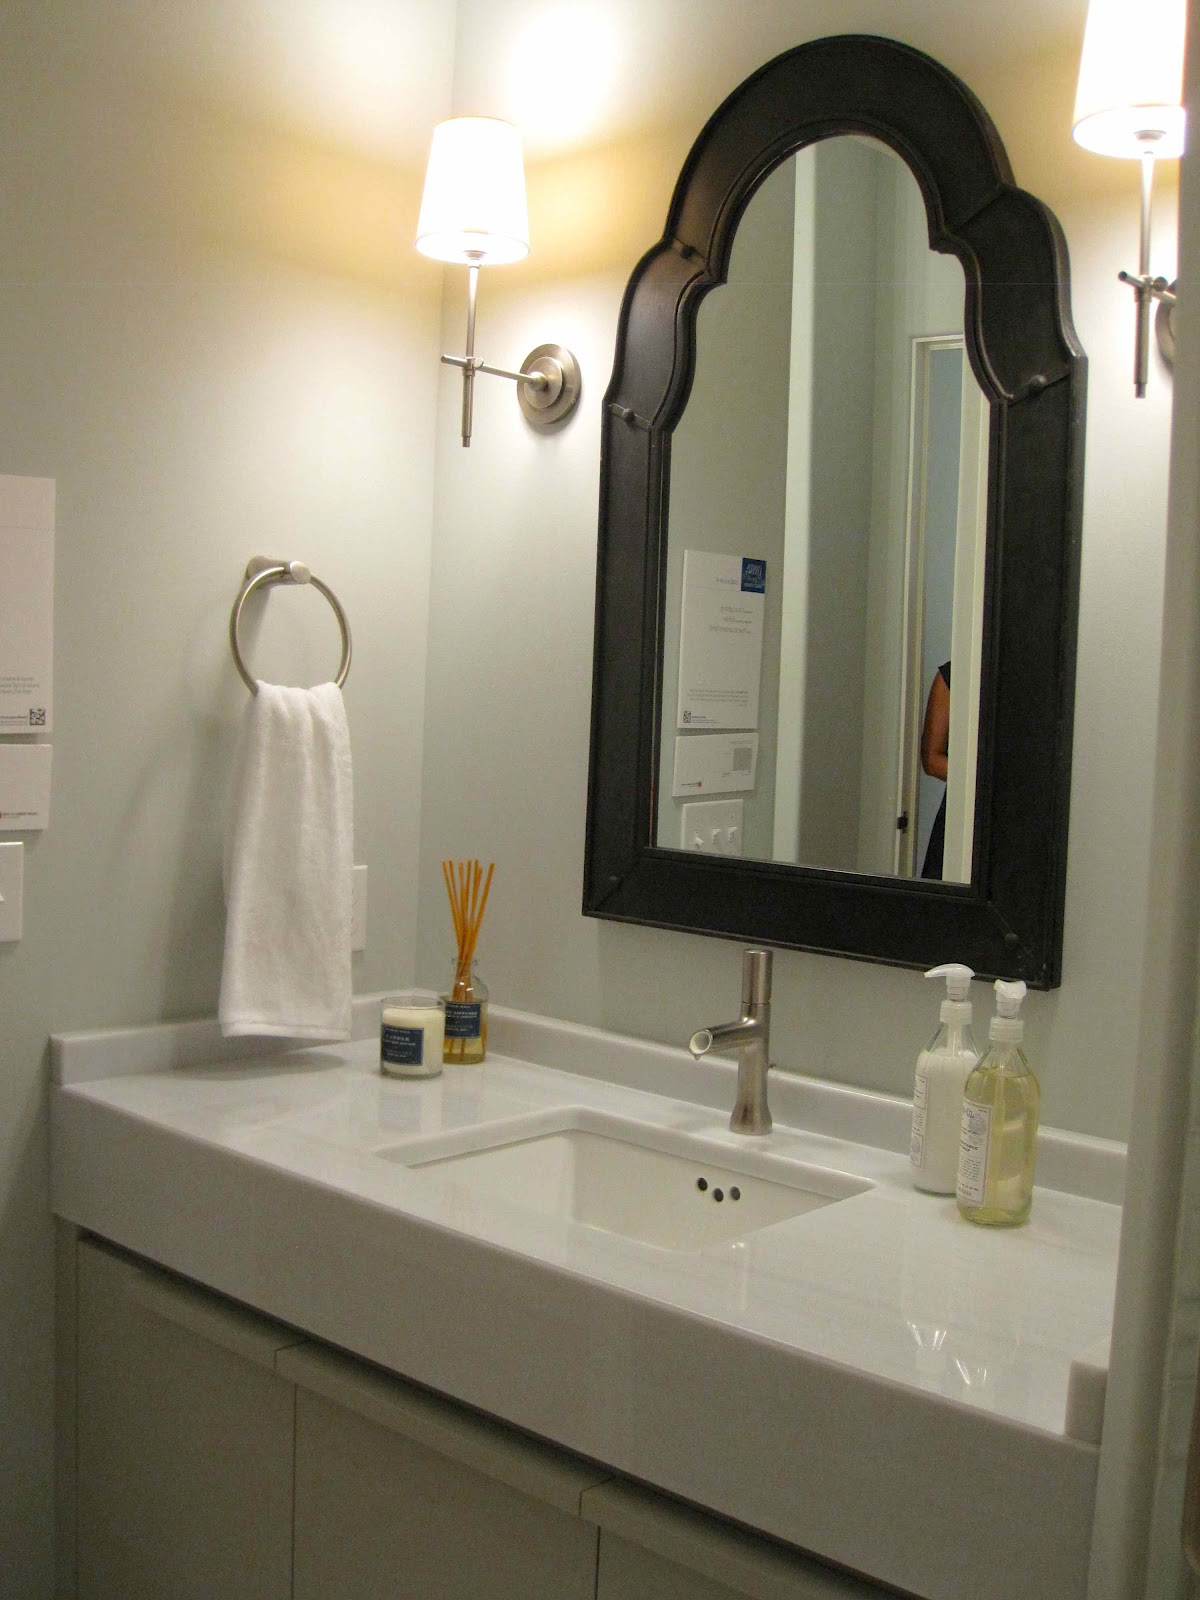 Noticing A Bunch Of Benefits In Placing The Large Bathroom